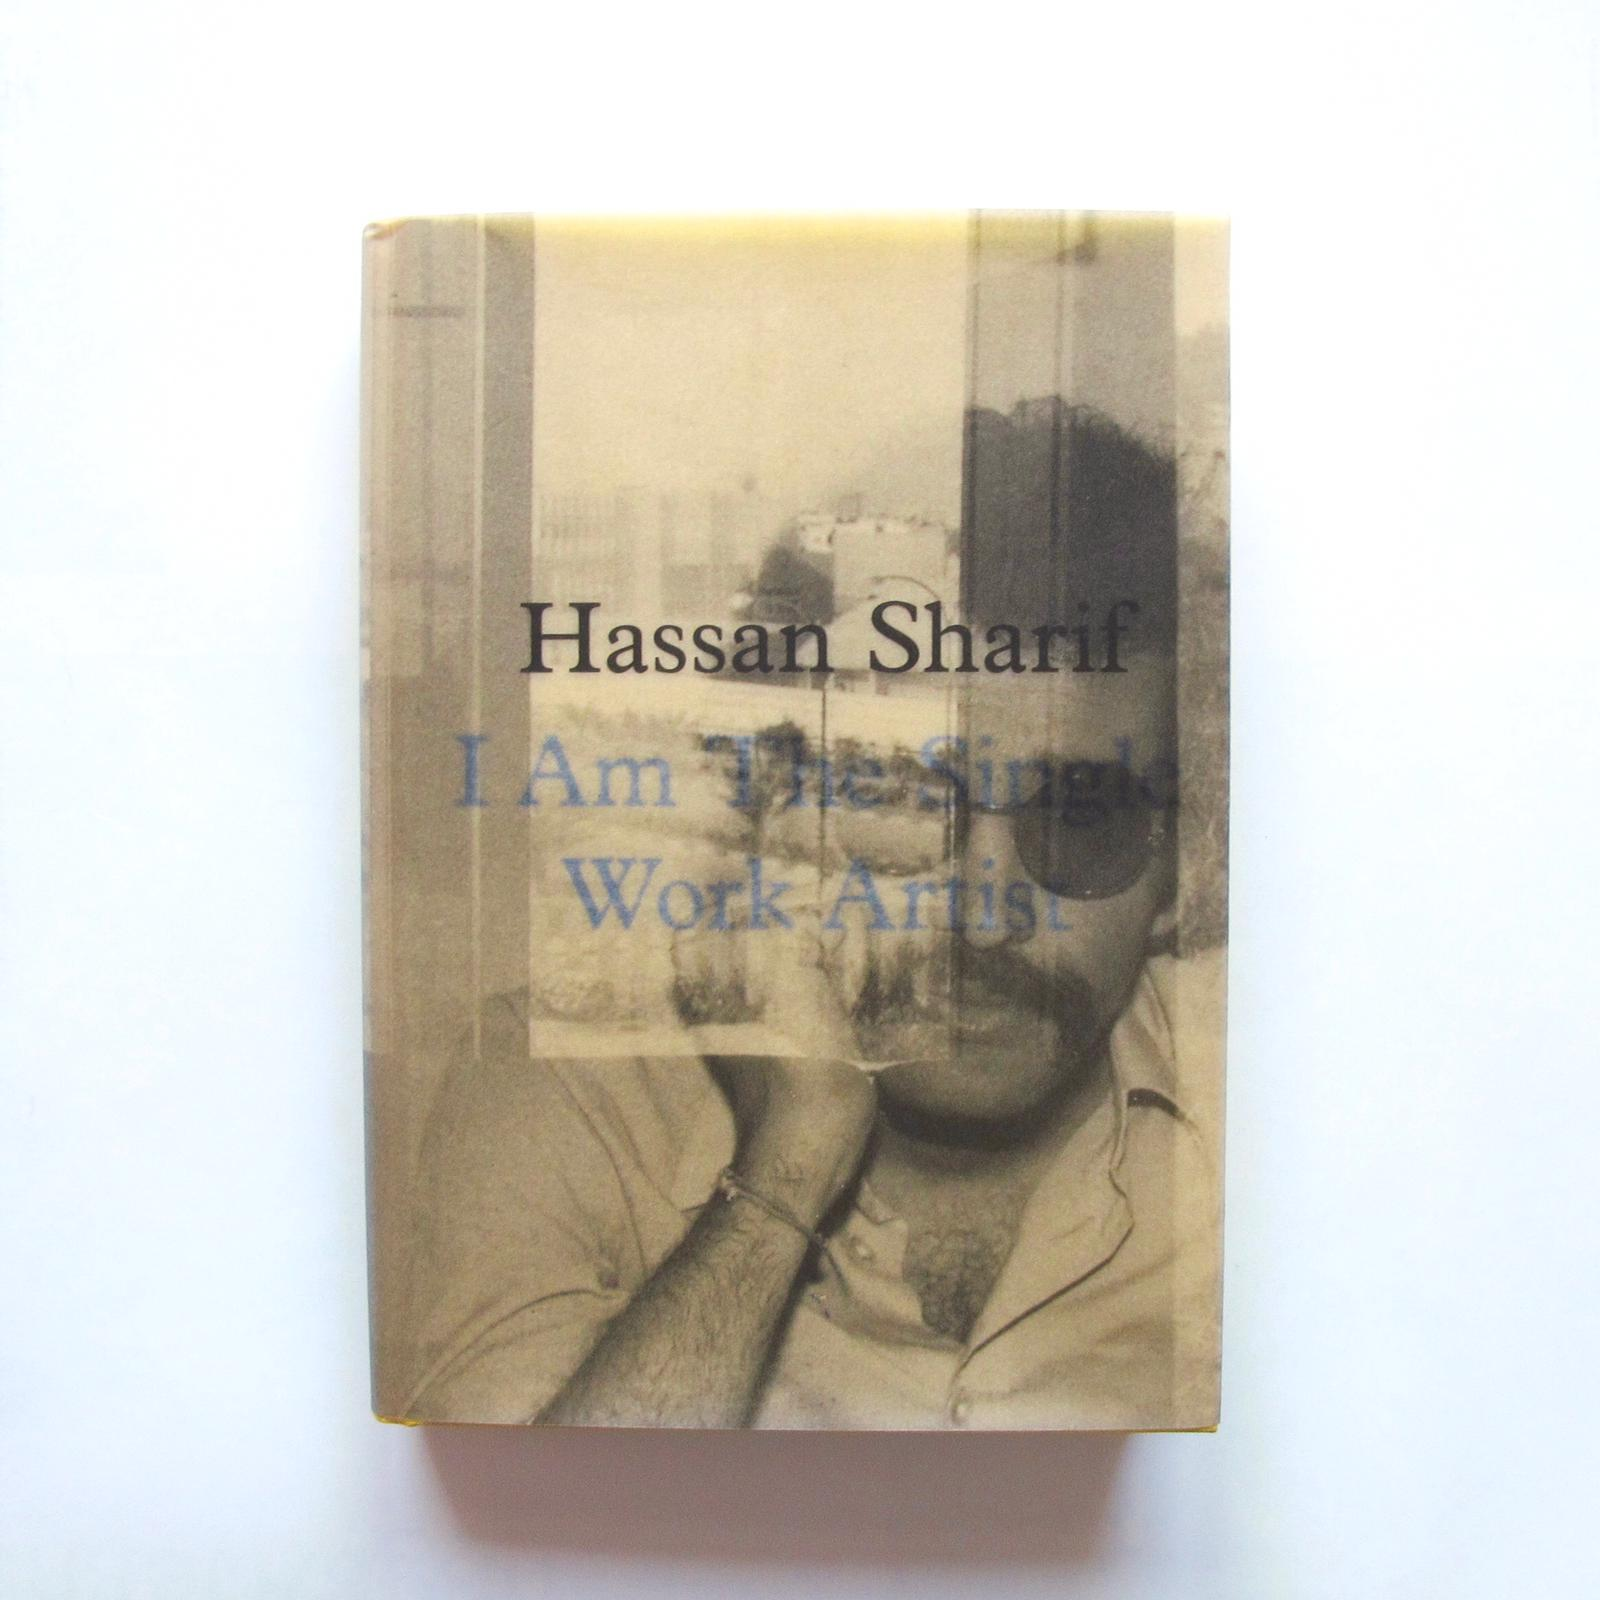 Hassan Sharif: I Am The Single Work Artist Image